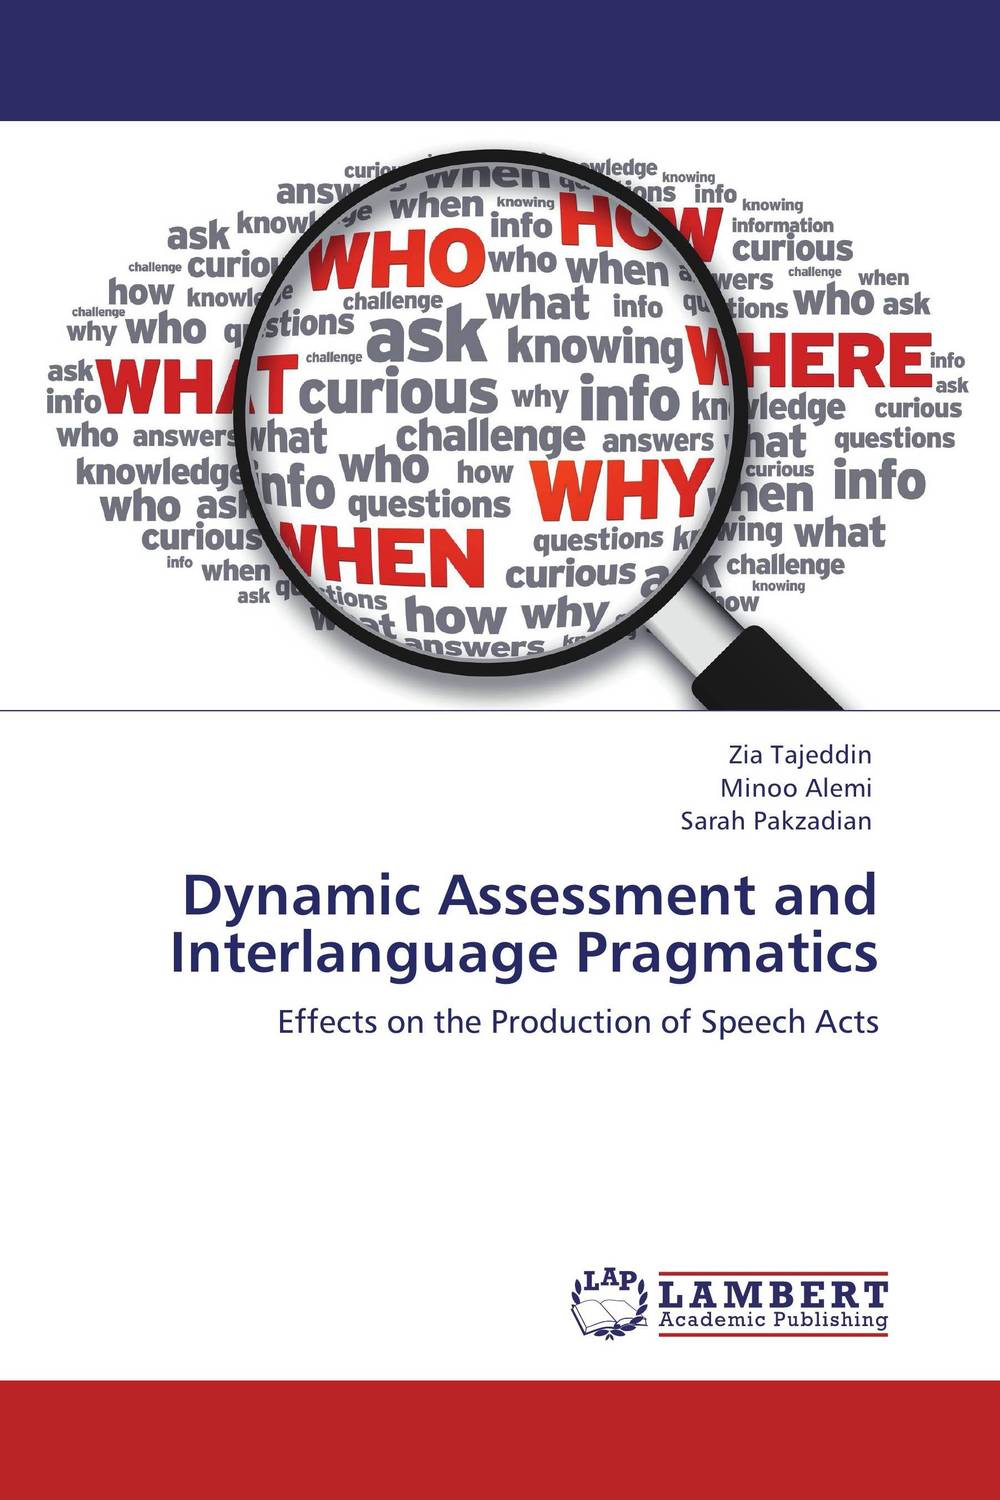 Dynamic Assessment and Interlanguage Pragmatics dynamic assessment and interlanguage pragmatics